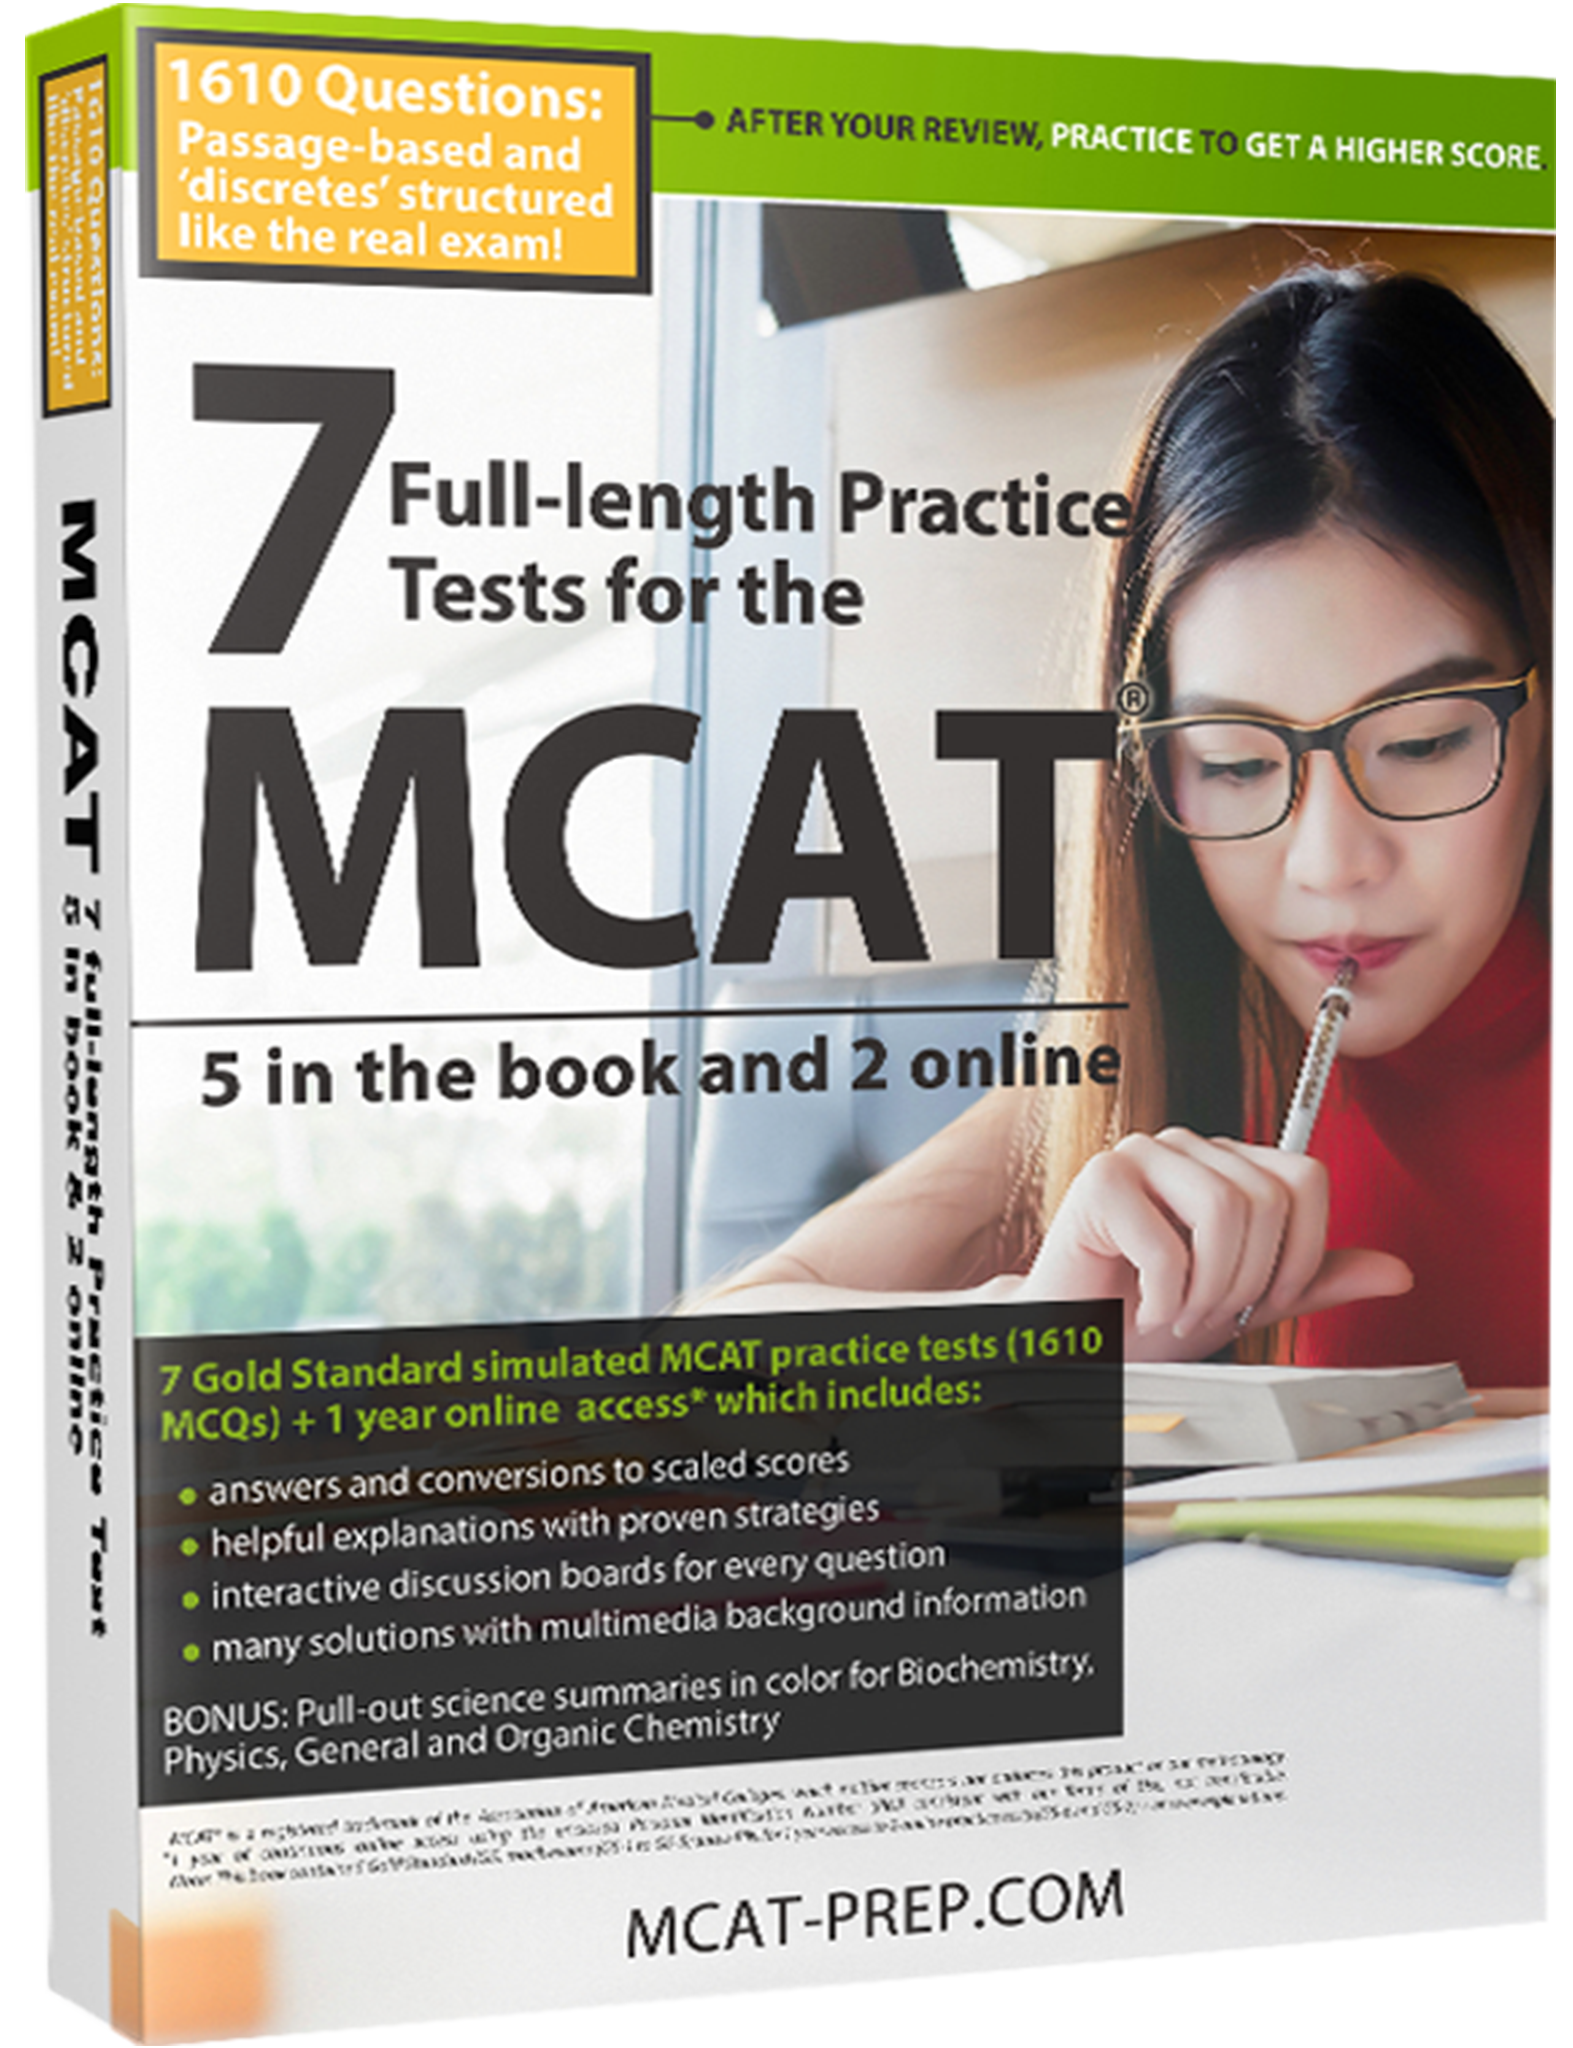 MCAT General Chemistry Review Summary| Gold Standard MCAT Prep